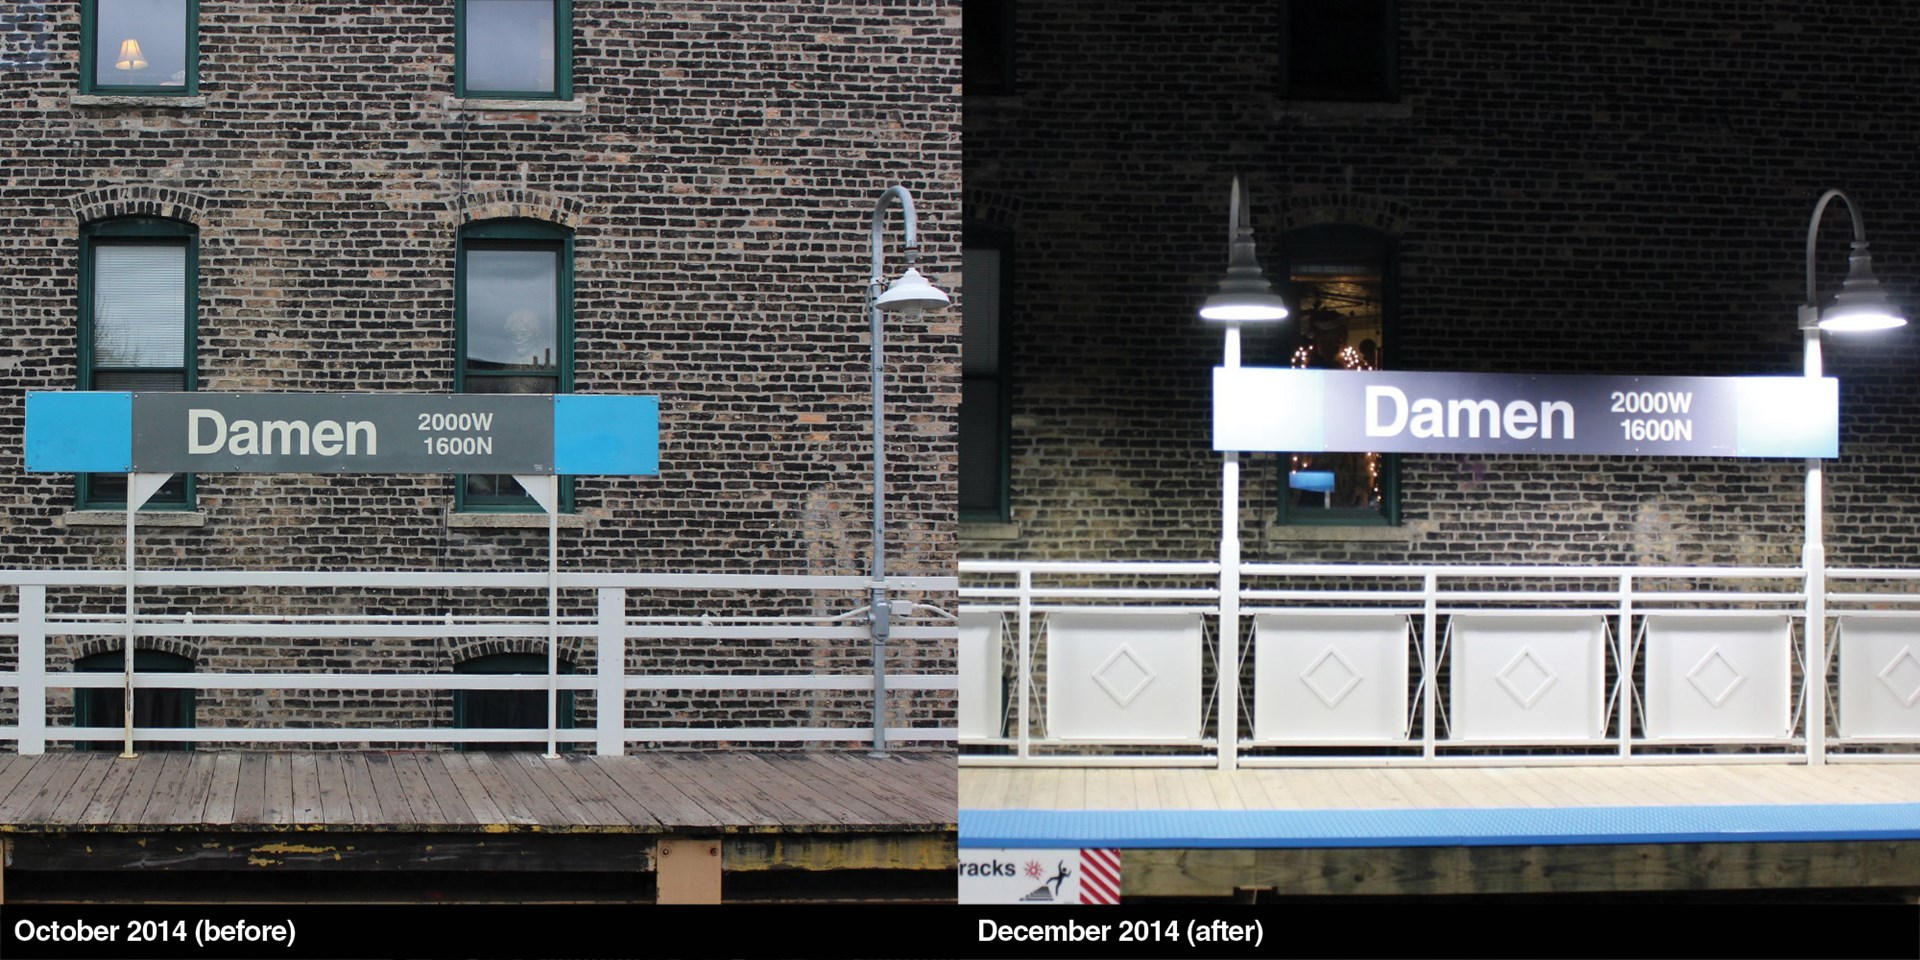 Damen Platform Before and After Work